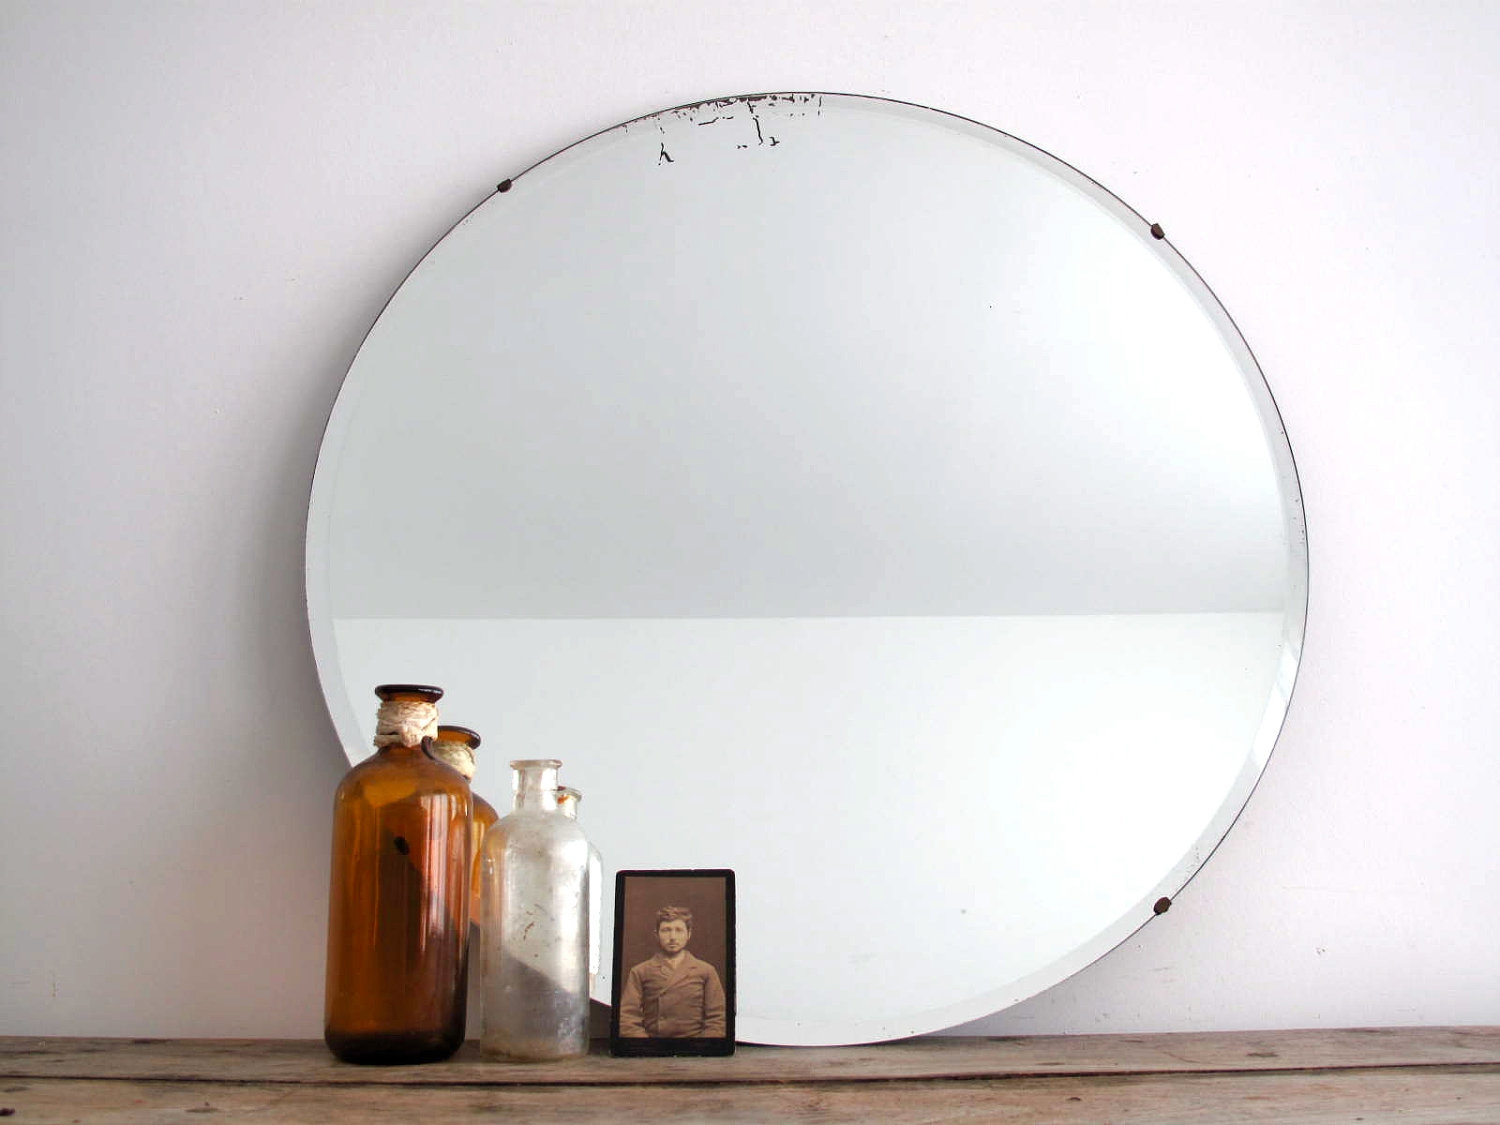 Vintage Round Wall Mirror Frameless Beveled Bathroom Mirror Regarding Antique Round Mirrors (View 5 of 15)